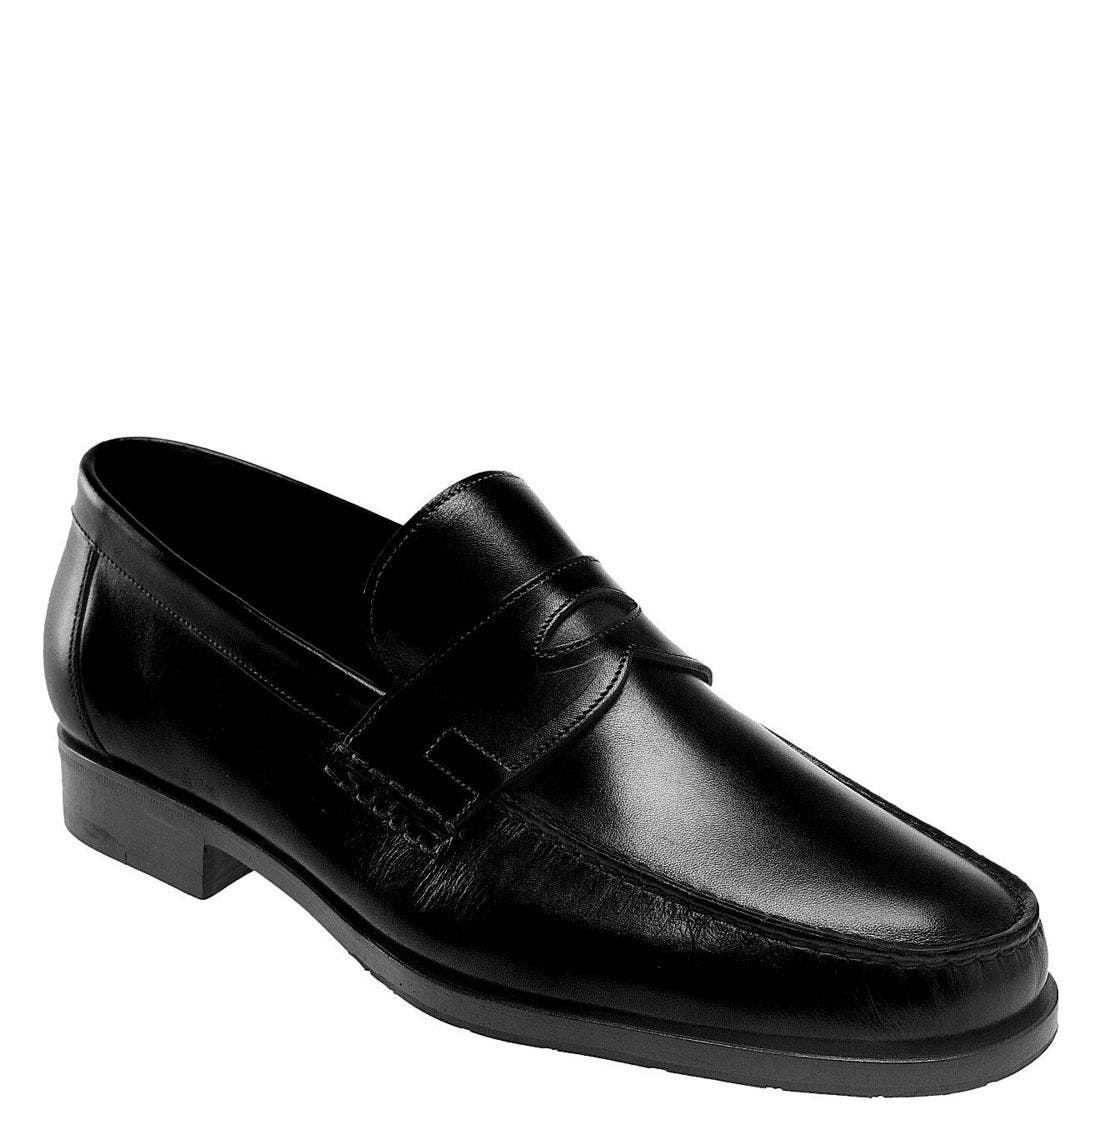 'Haley' Loafer, Main, color, BLK